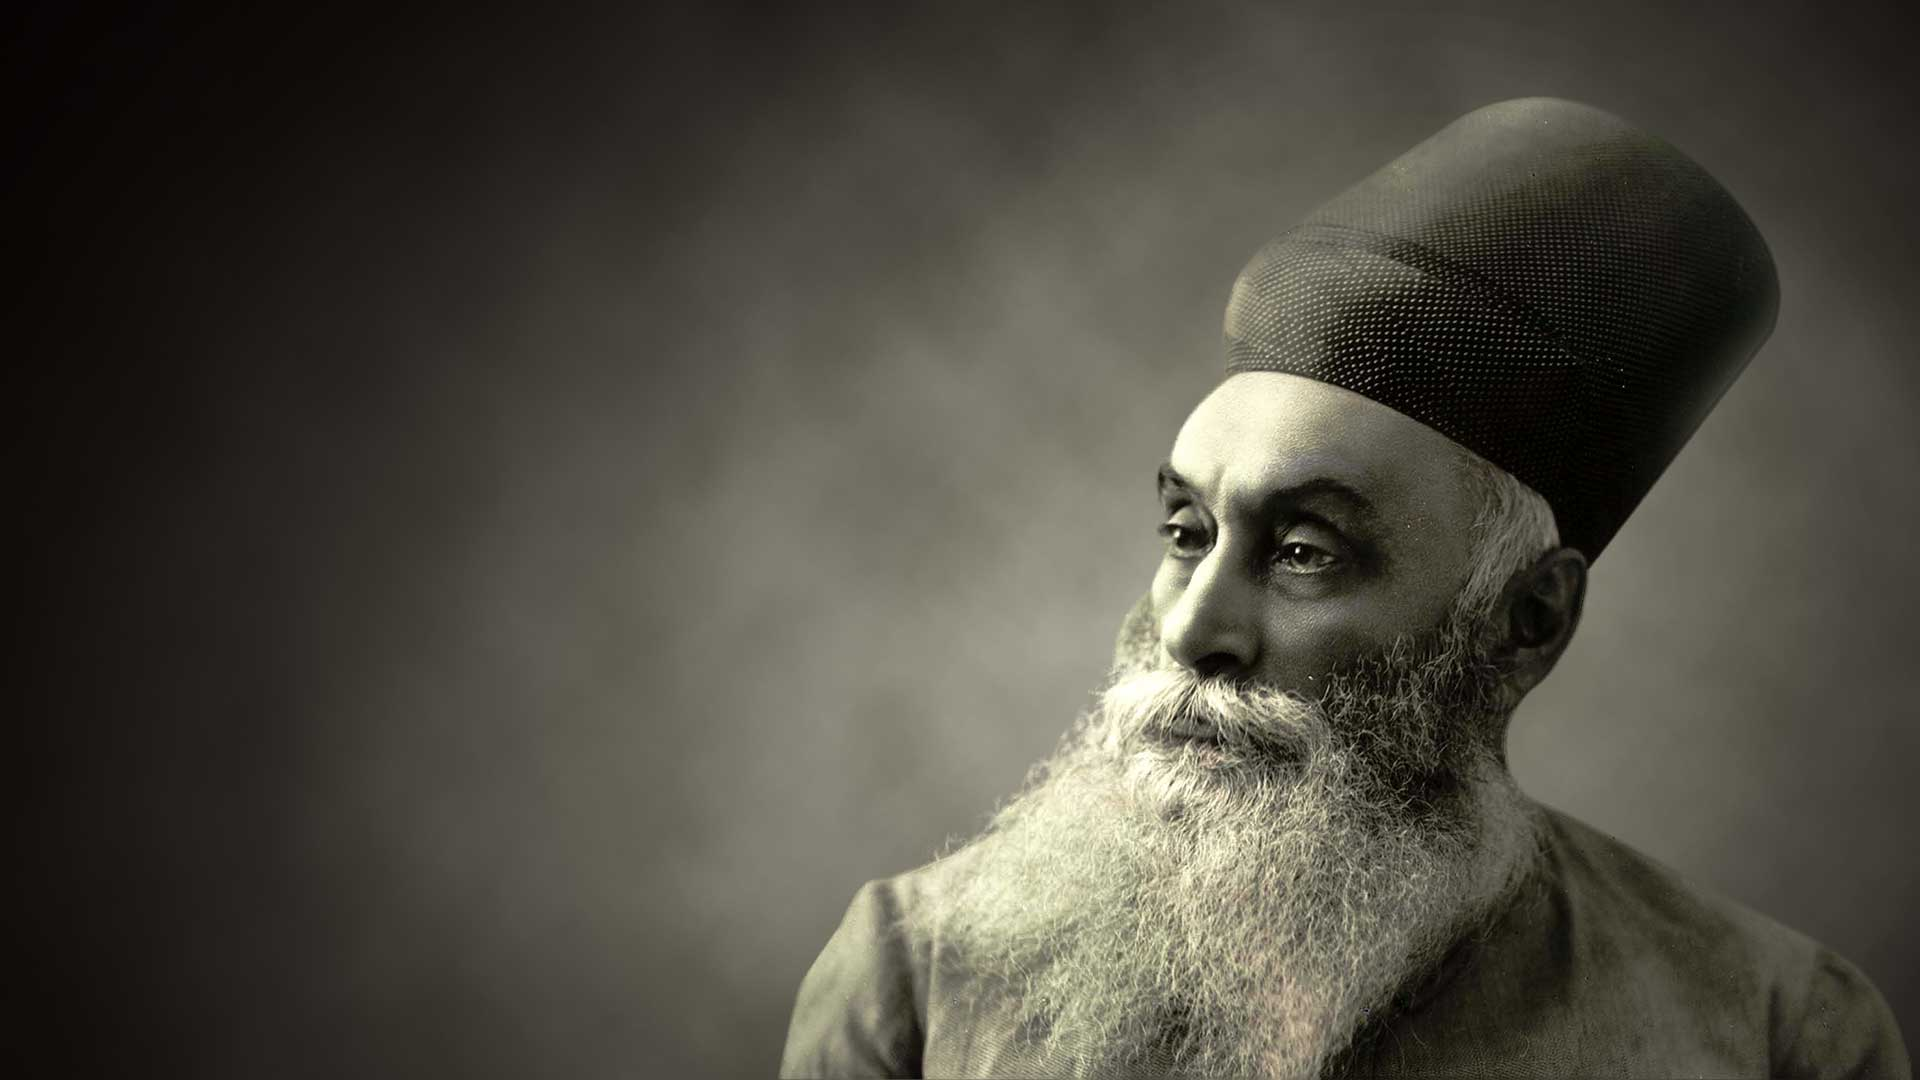 Tata group founder, Jamsetji Tata